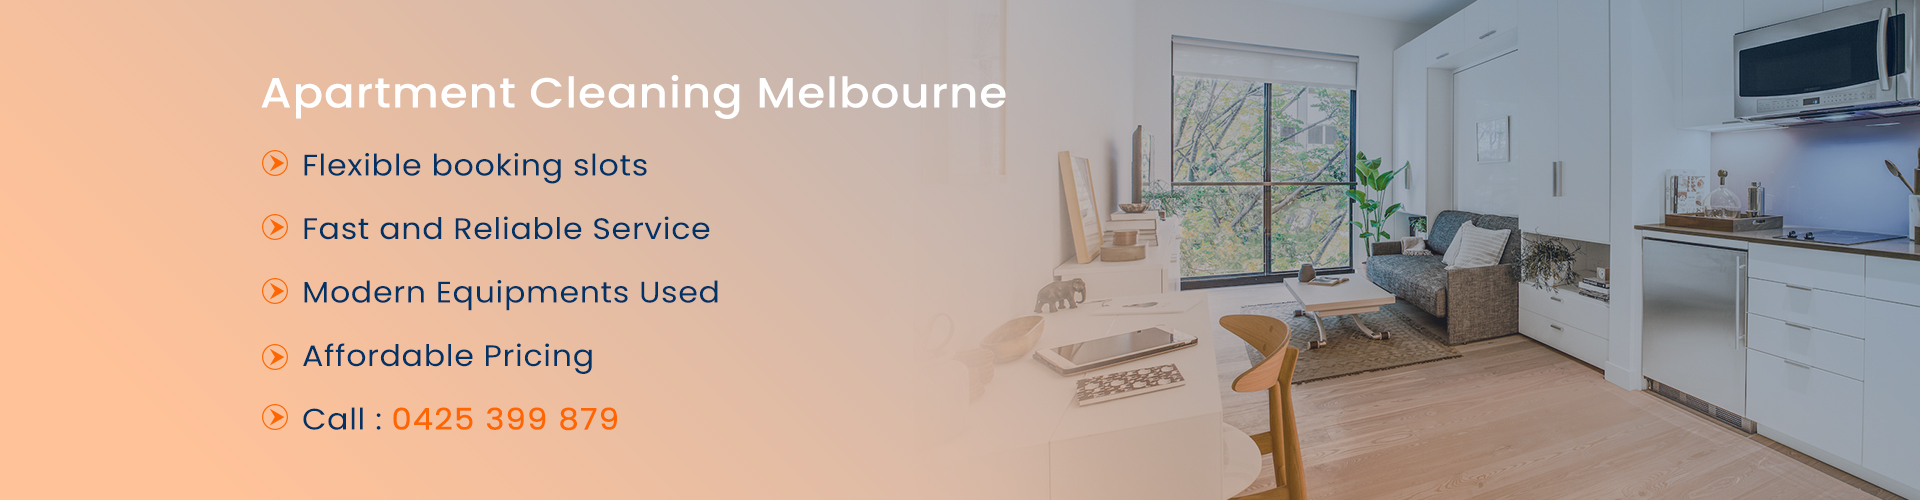 Apartment Cleaning Services Melbourne